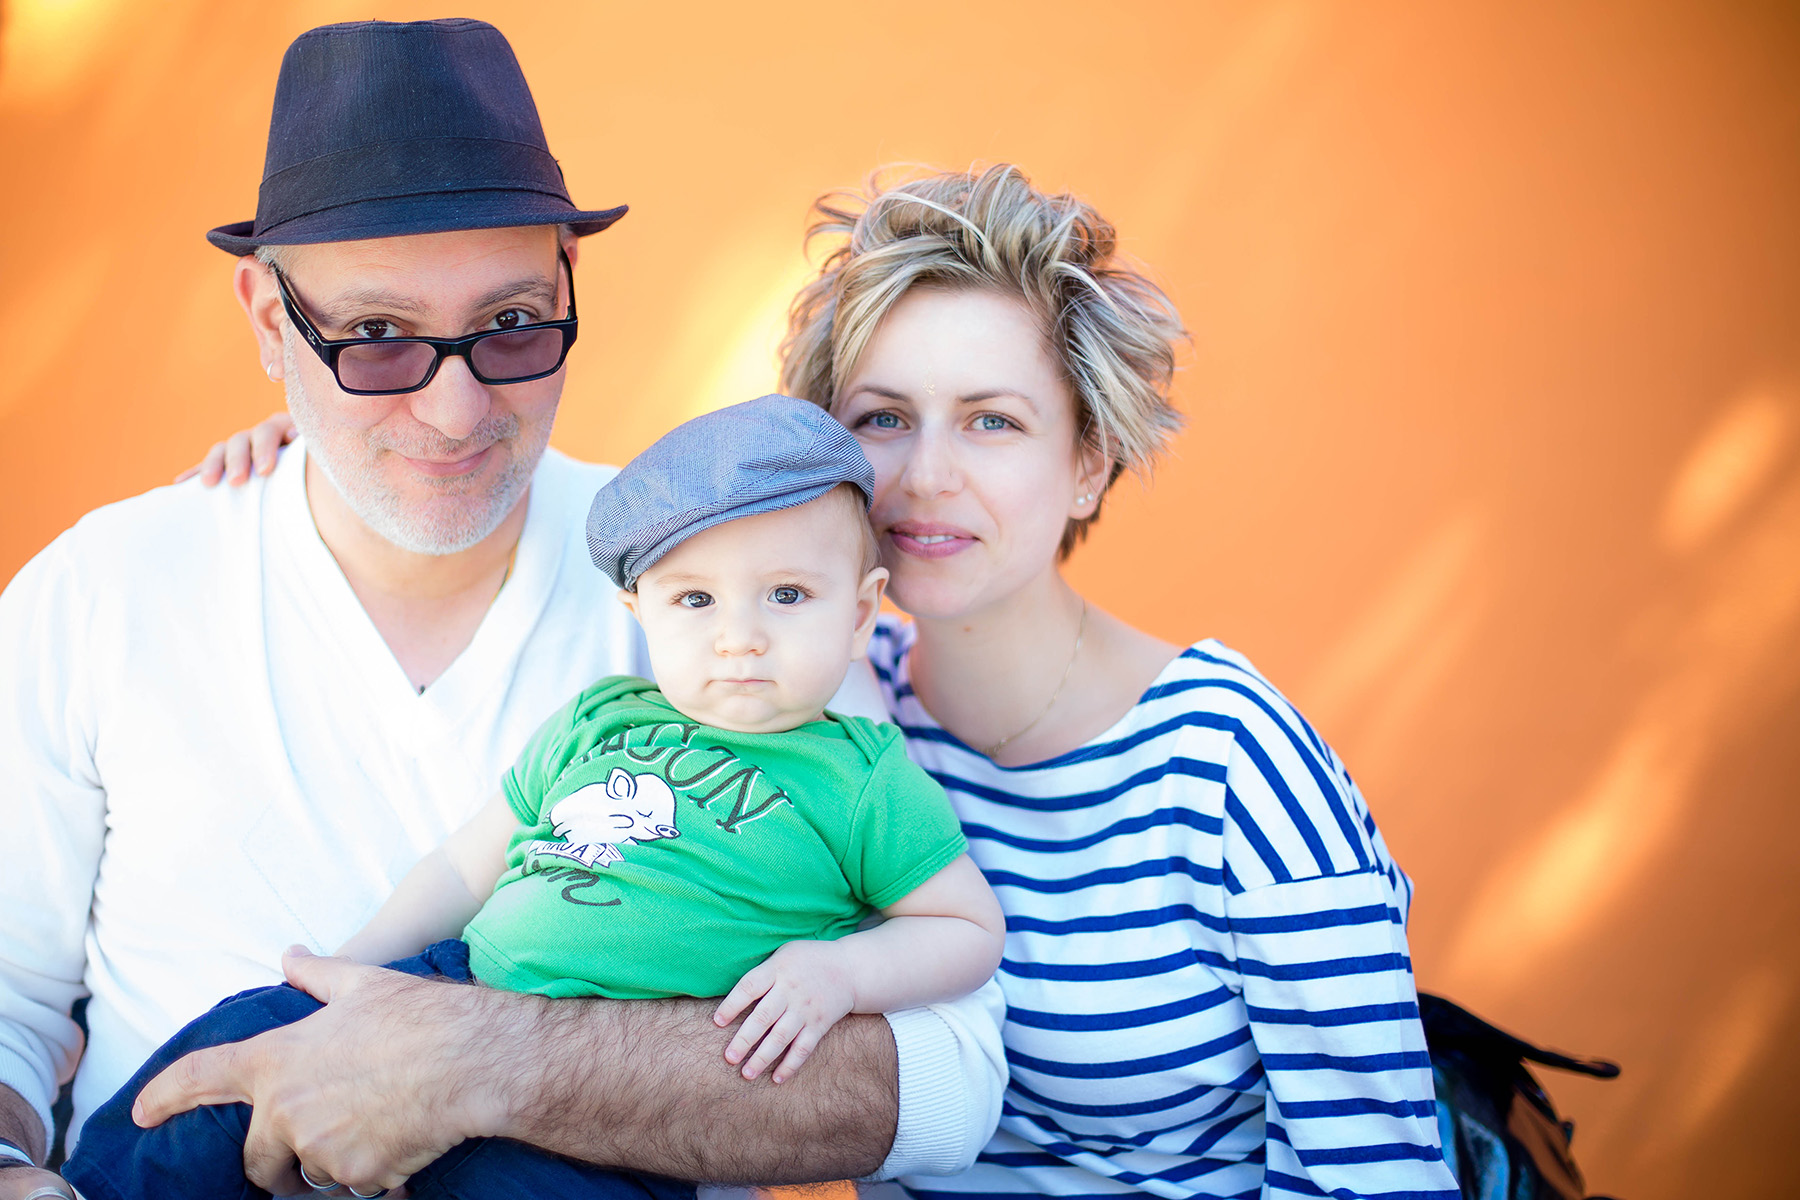 wynwood-hipster-family-photographer-vegan-love-baby-parents-childhood-memories.jpg